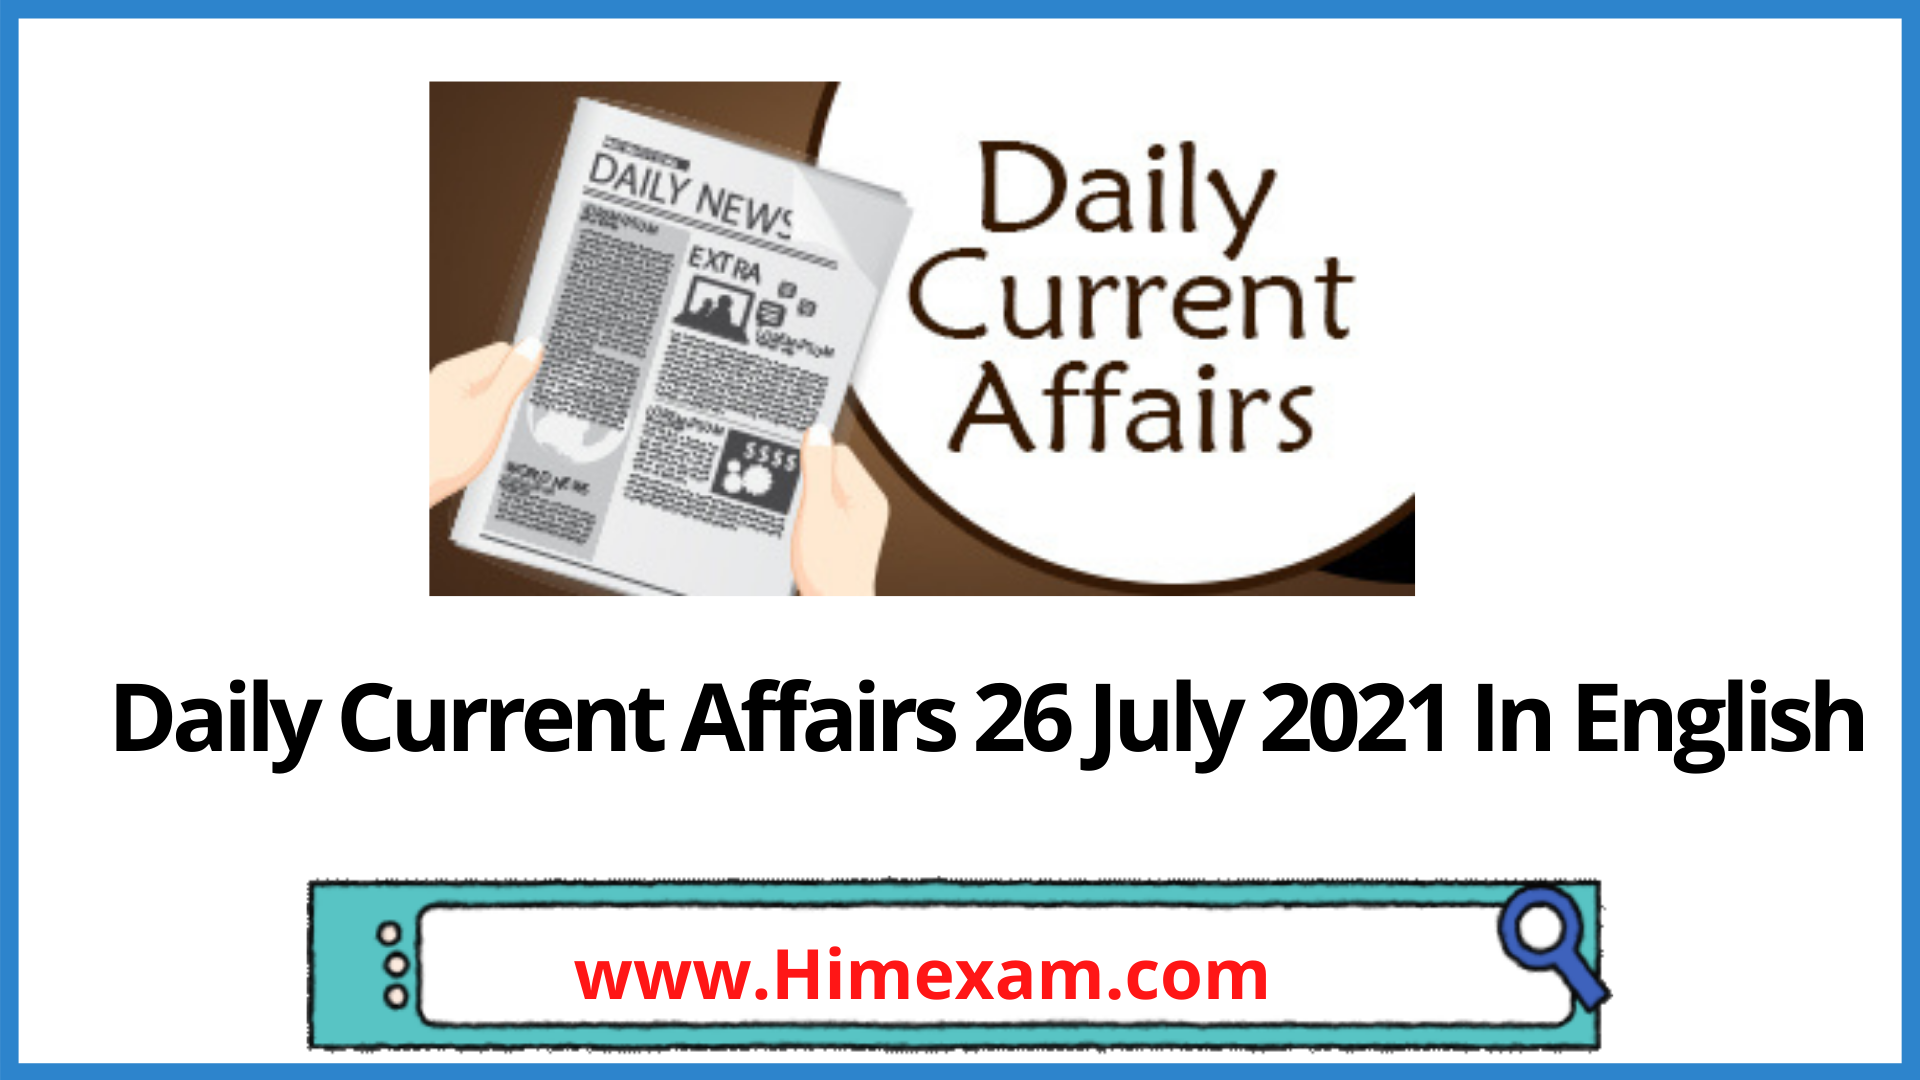 Daily Current Affairs 26 July 2021 In English